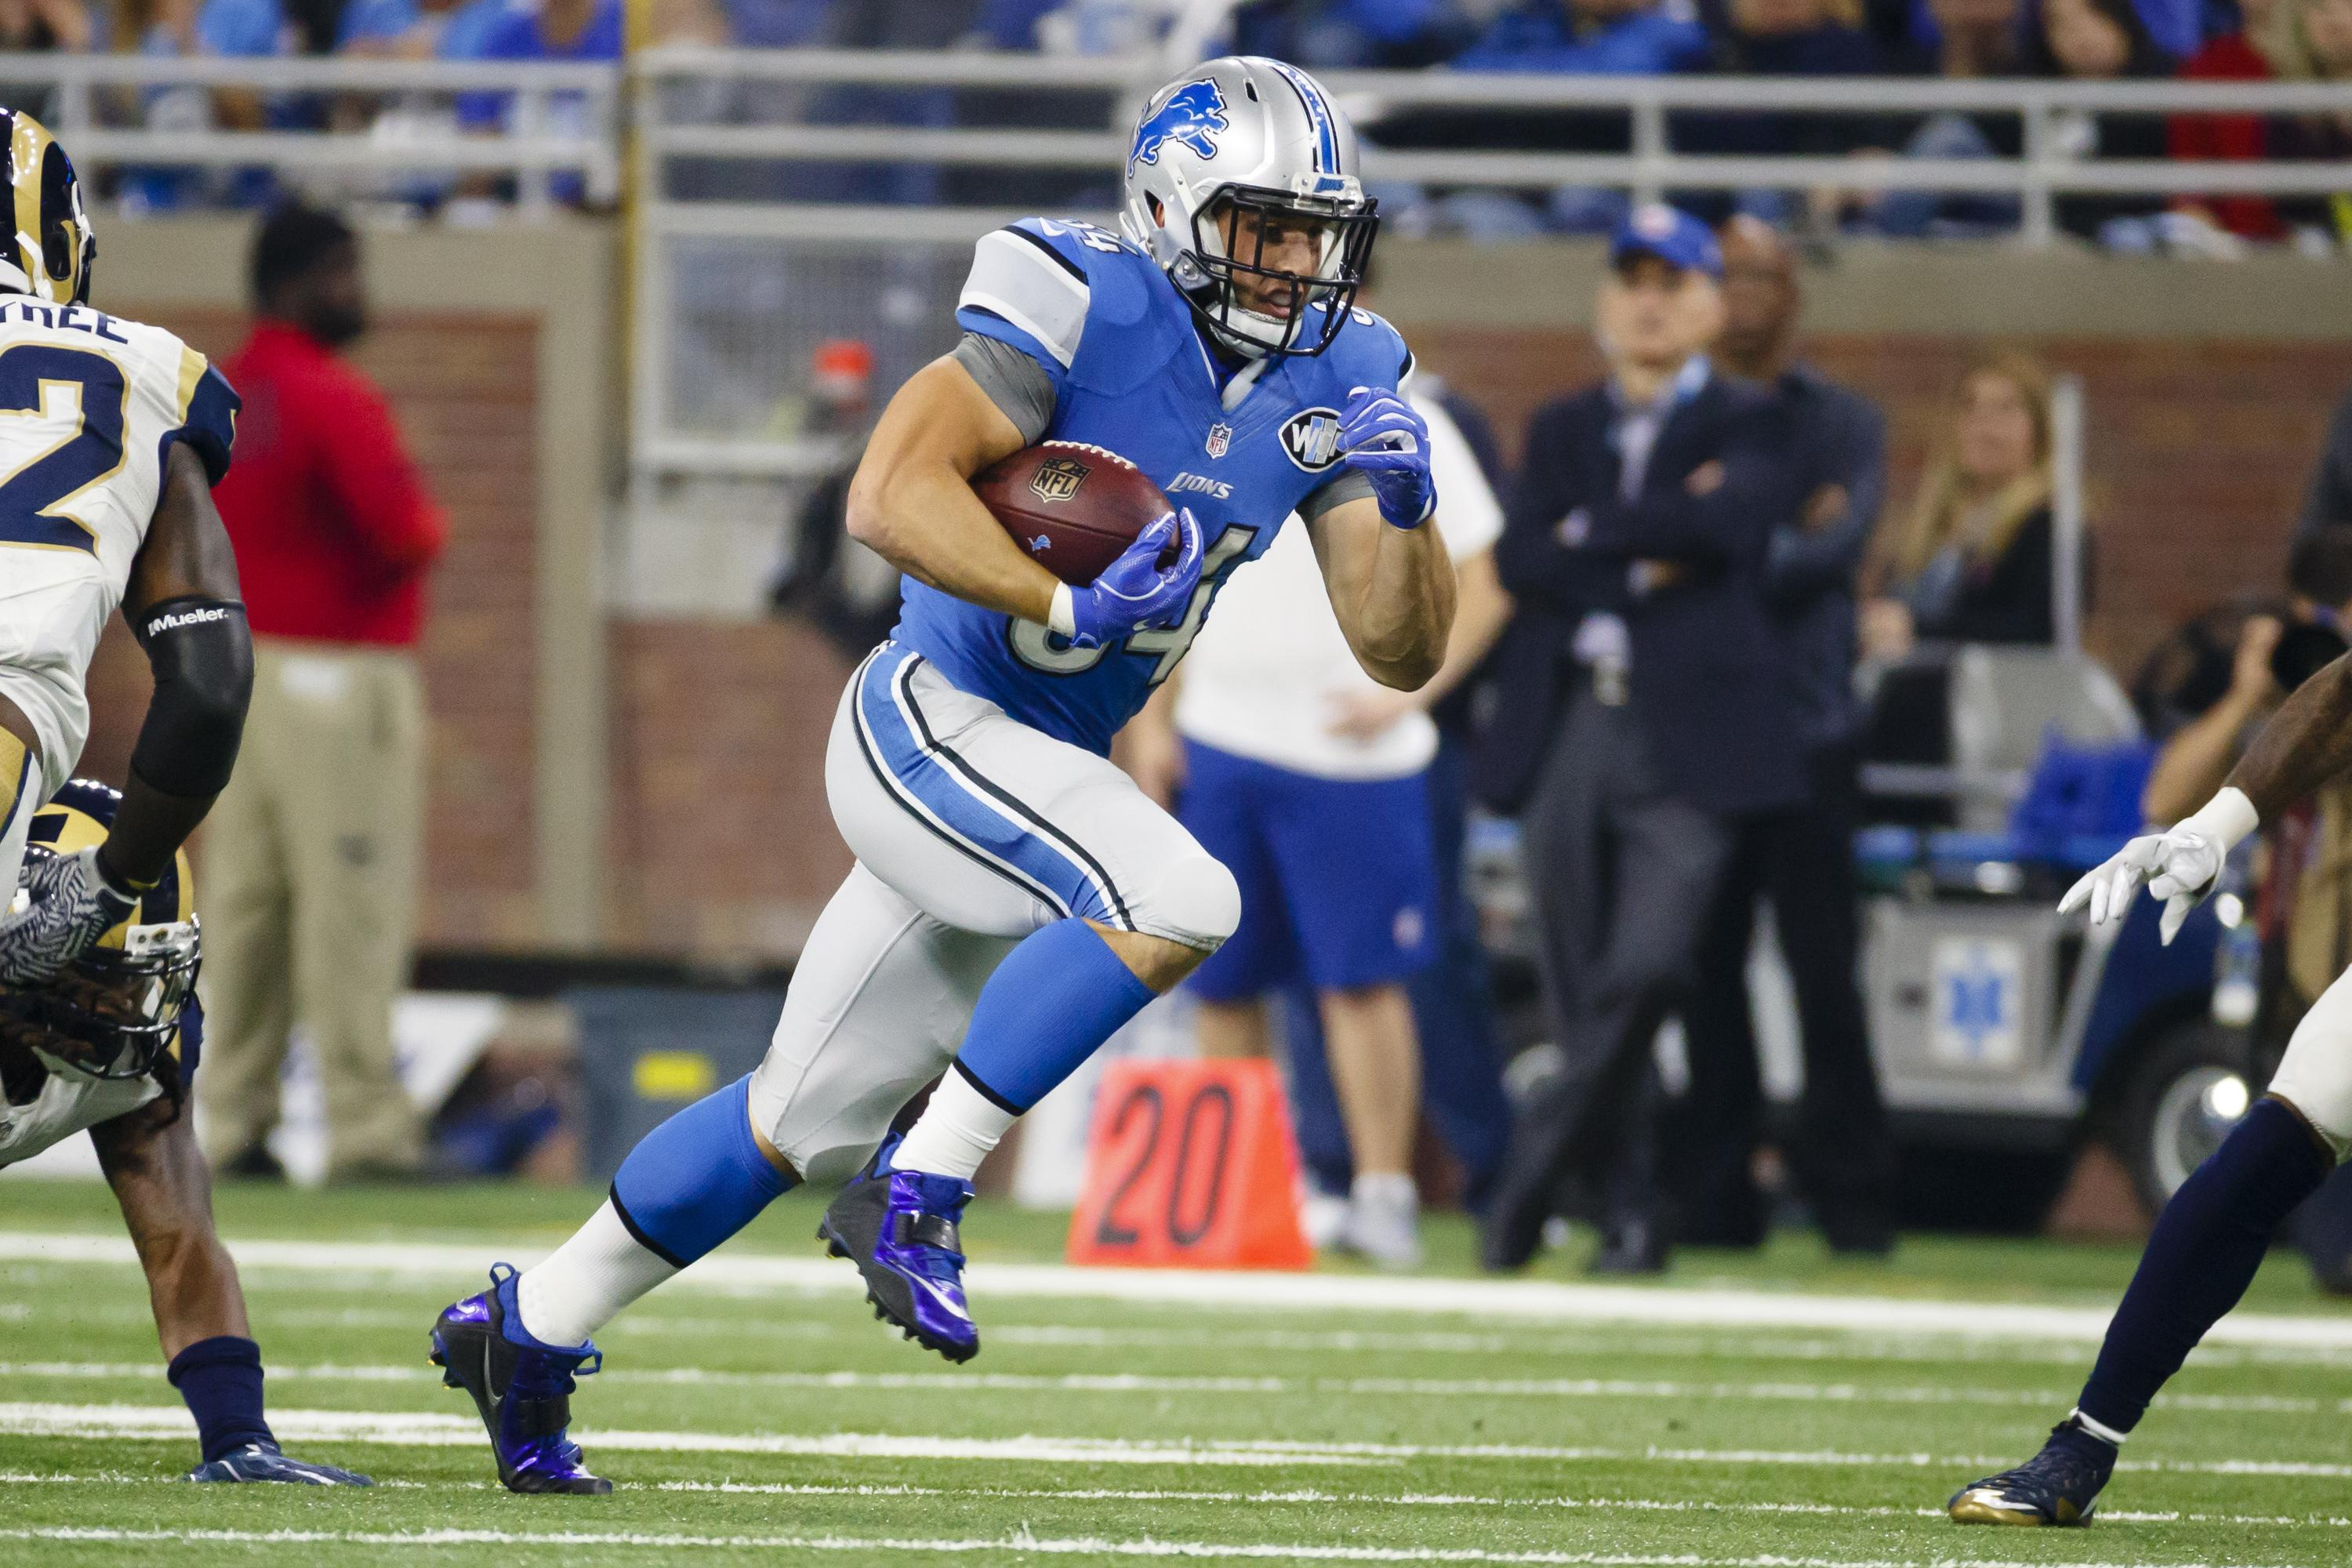 This Oct 16 2016 Photo Shows Detroit Lions Fullback Zach Zenner Rushing Against The